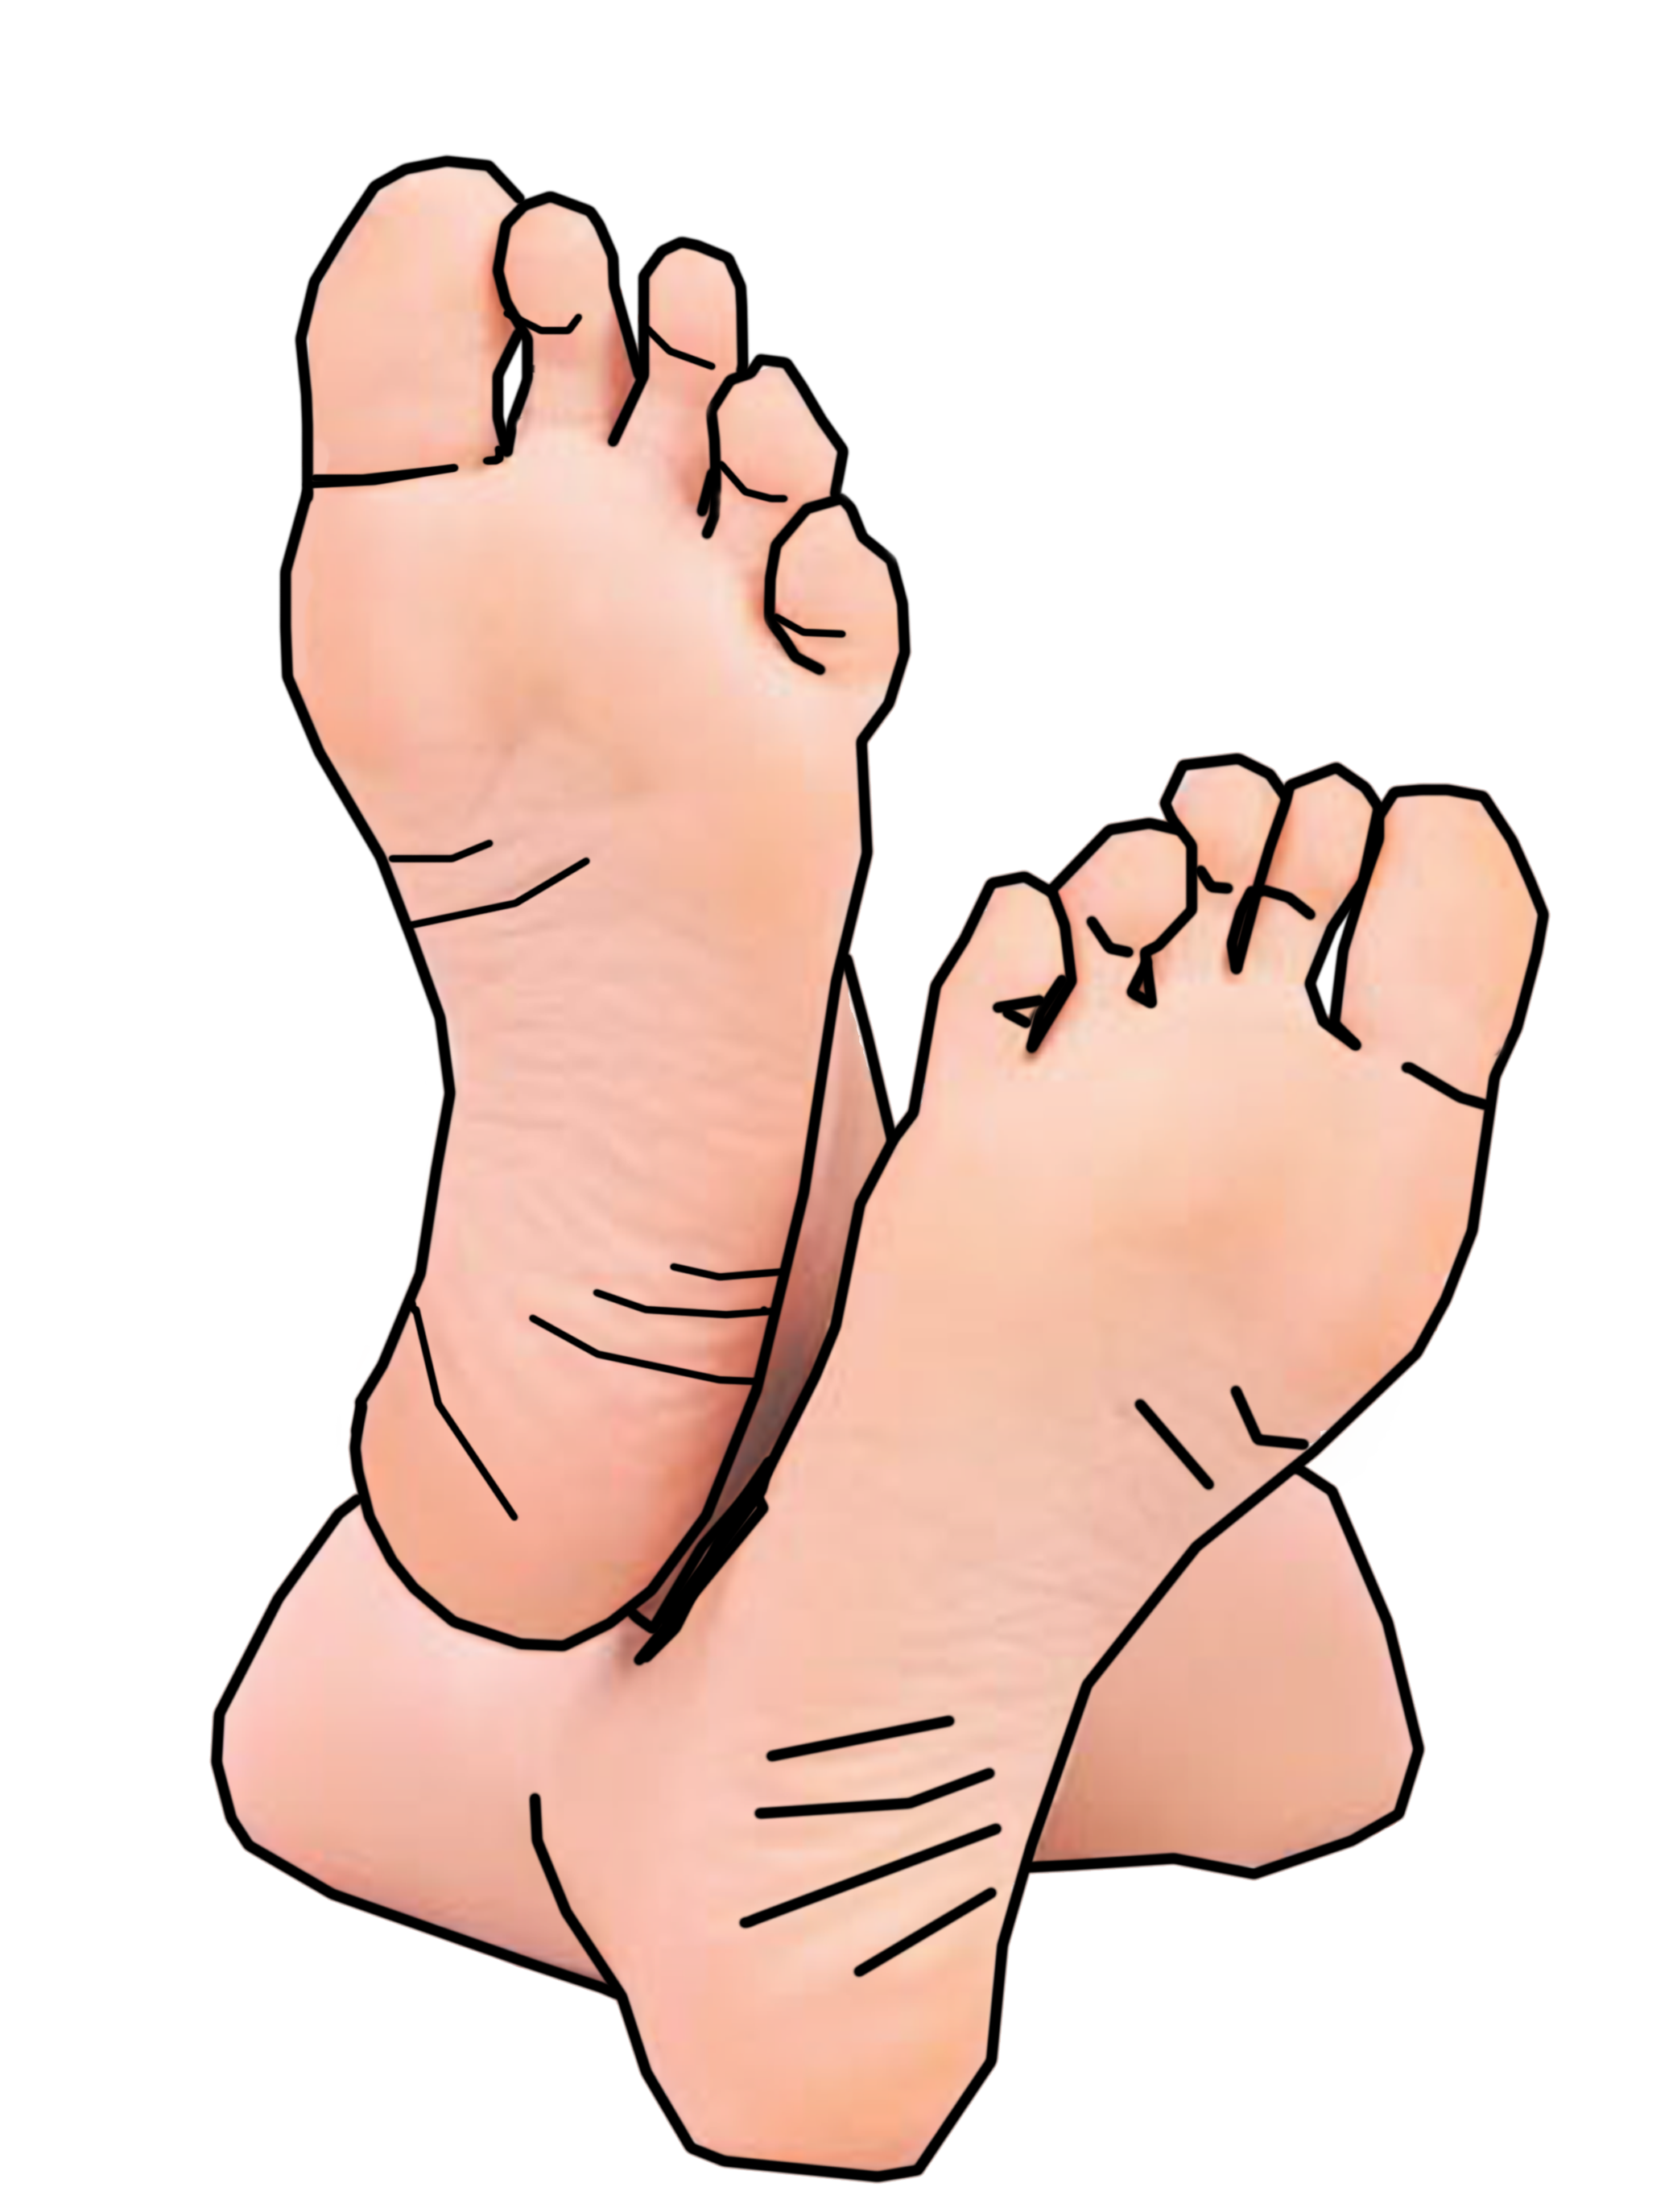 Ankles crossed clipart vector black and white stock Fingers Crossed Clipart   Free download best Fingers Crossed Clipart ... vector black and white stock